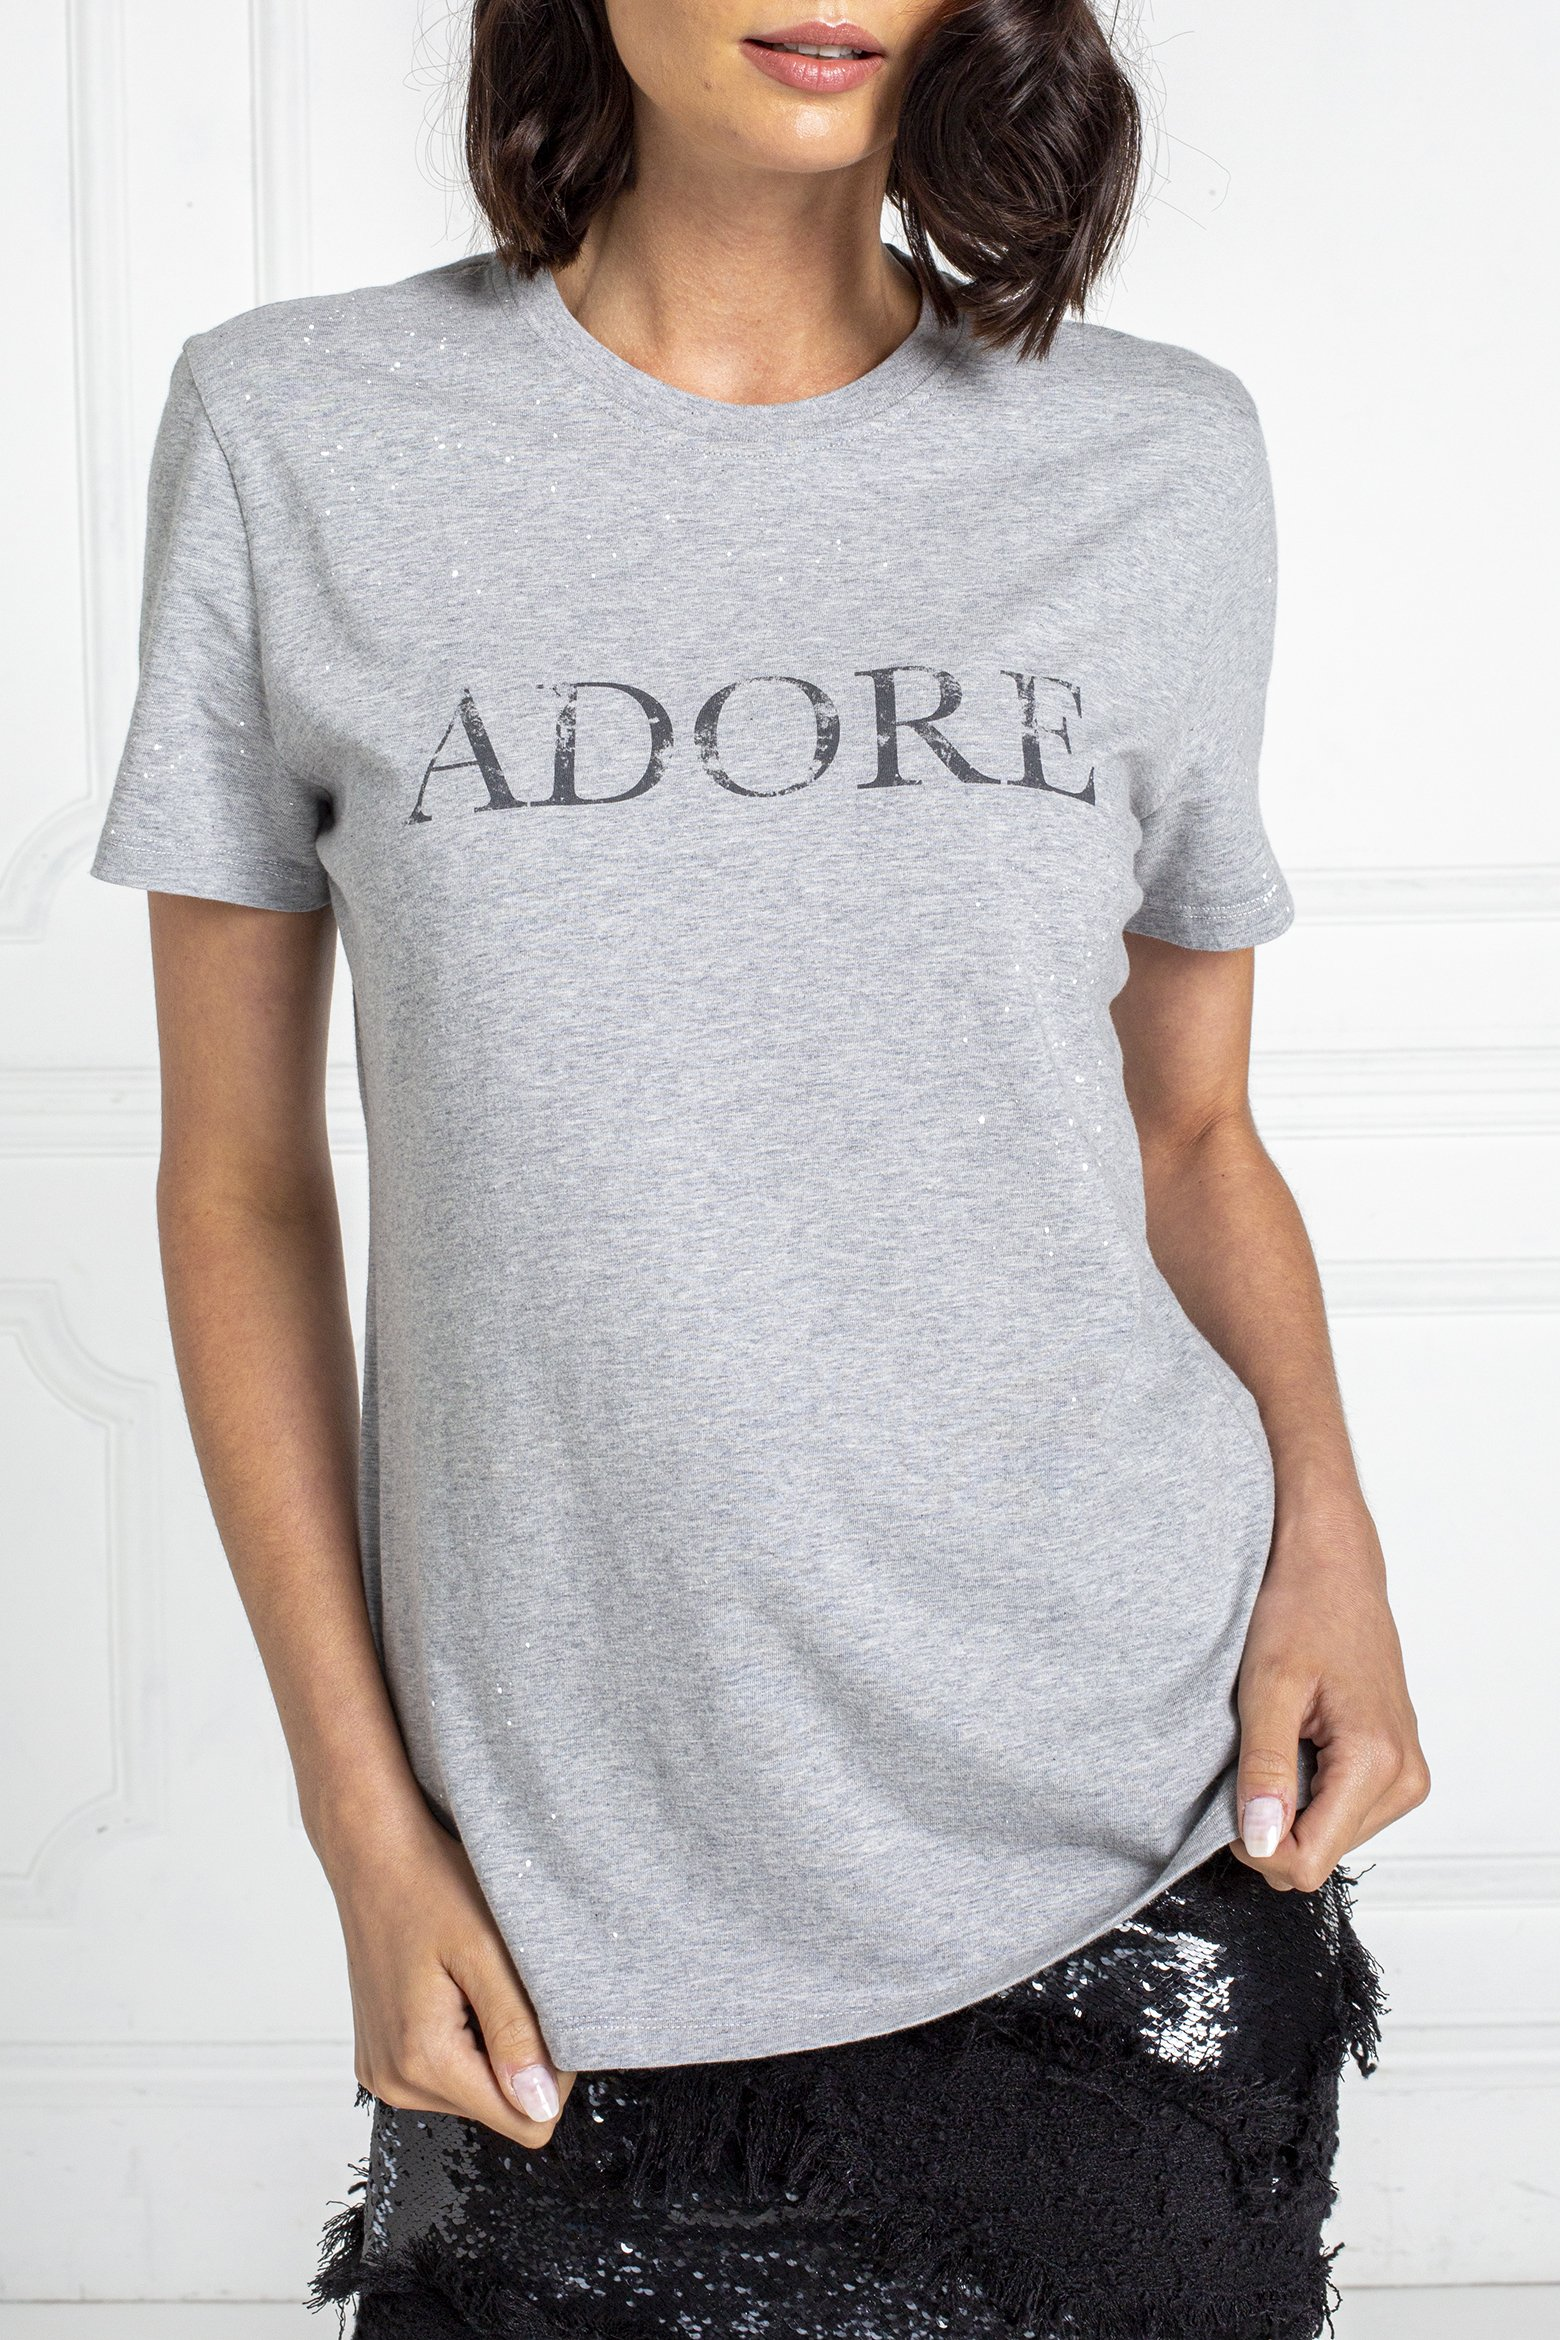 hom-laurence-adore-tshirt-grey-screenprint-paint-splatters-7